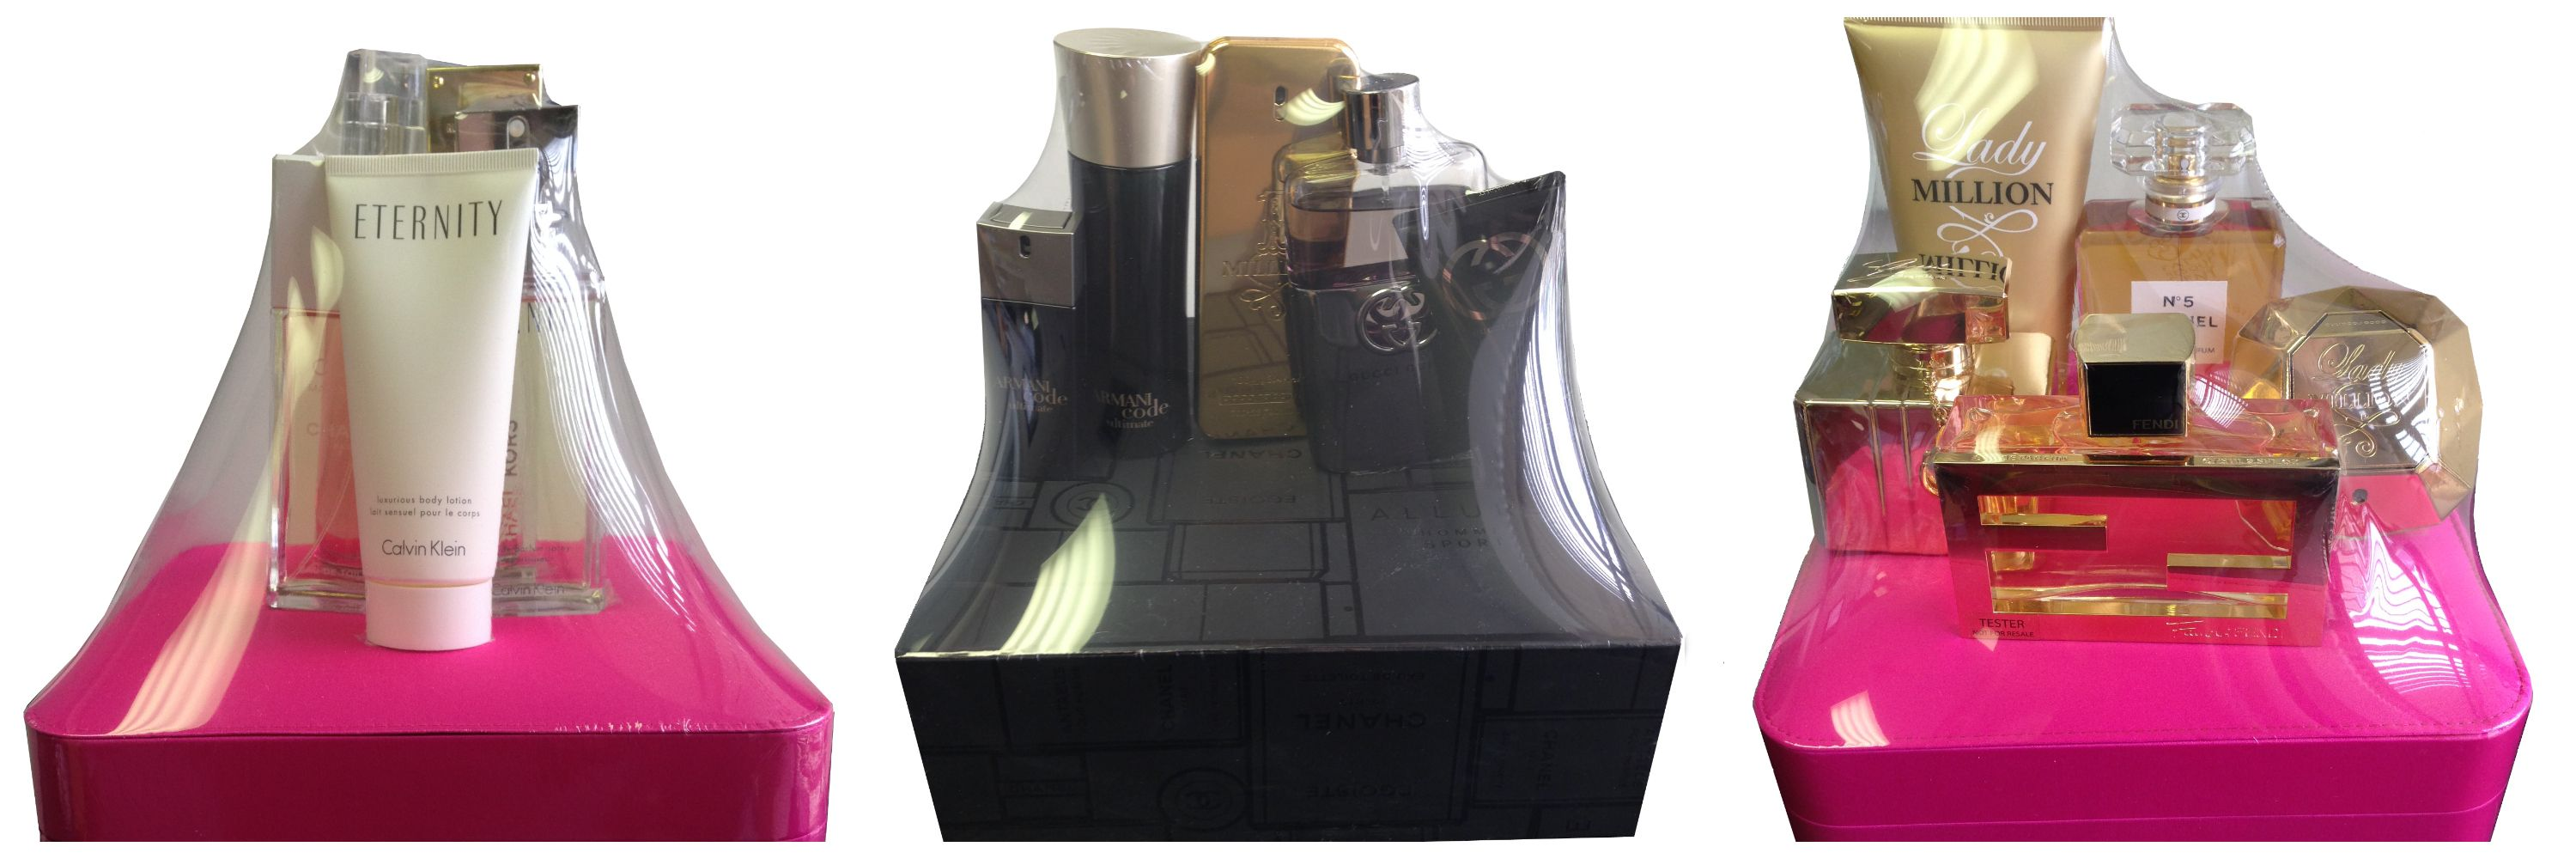 Bid on three different perfume baskets with perfumes & colognes from the collection of GUCCI, CHANNEL, GIORGIO ARMANI, CALVIN KLEIN, GIVENCHY, MICHAEL KORS, FENDI & PACO RABANNE.  Thanks to Macy's!